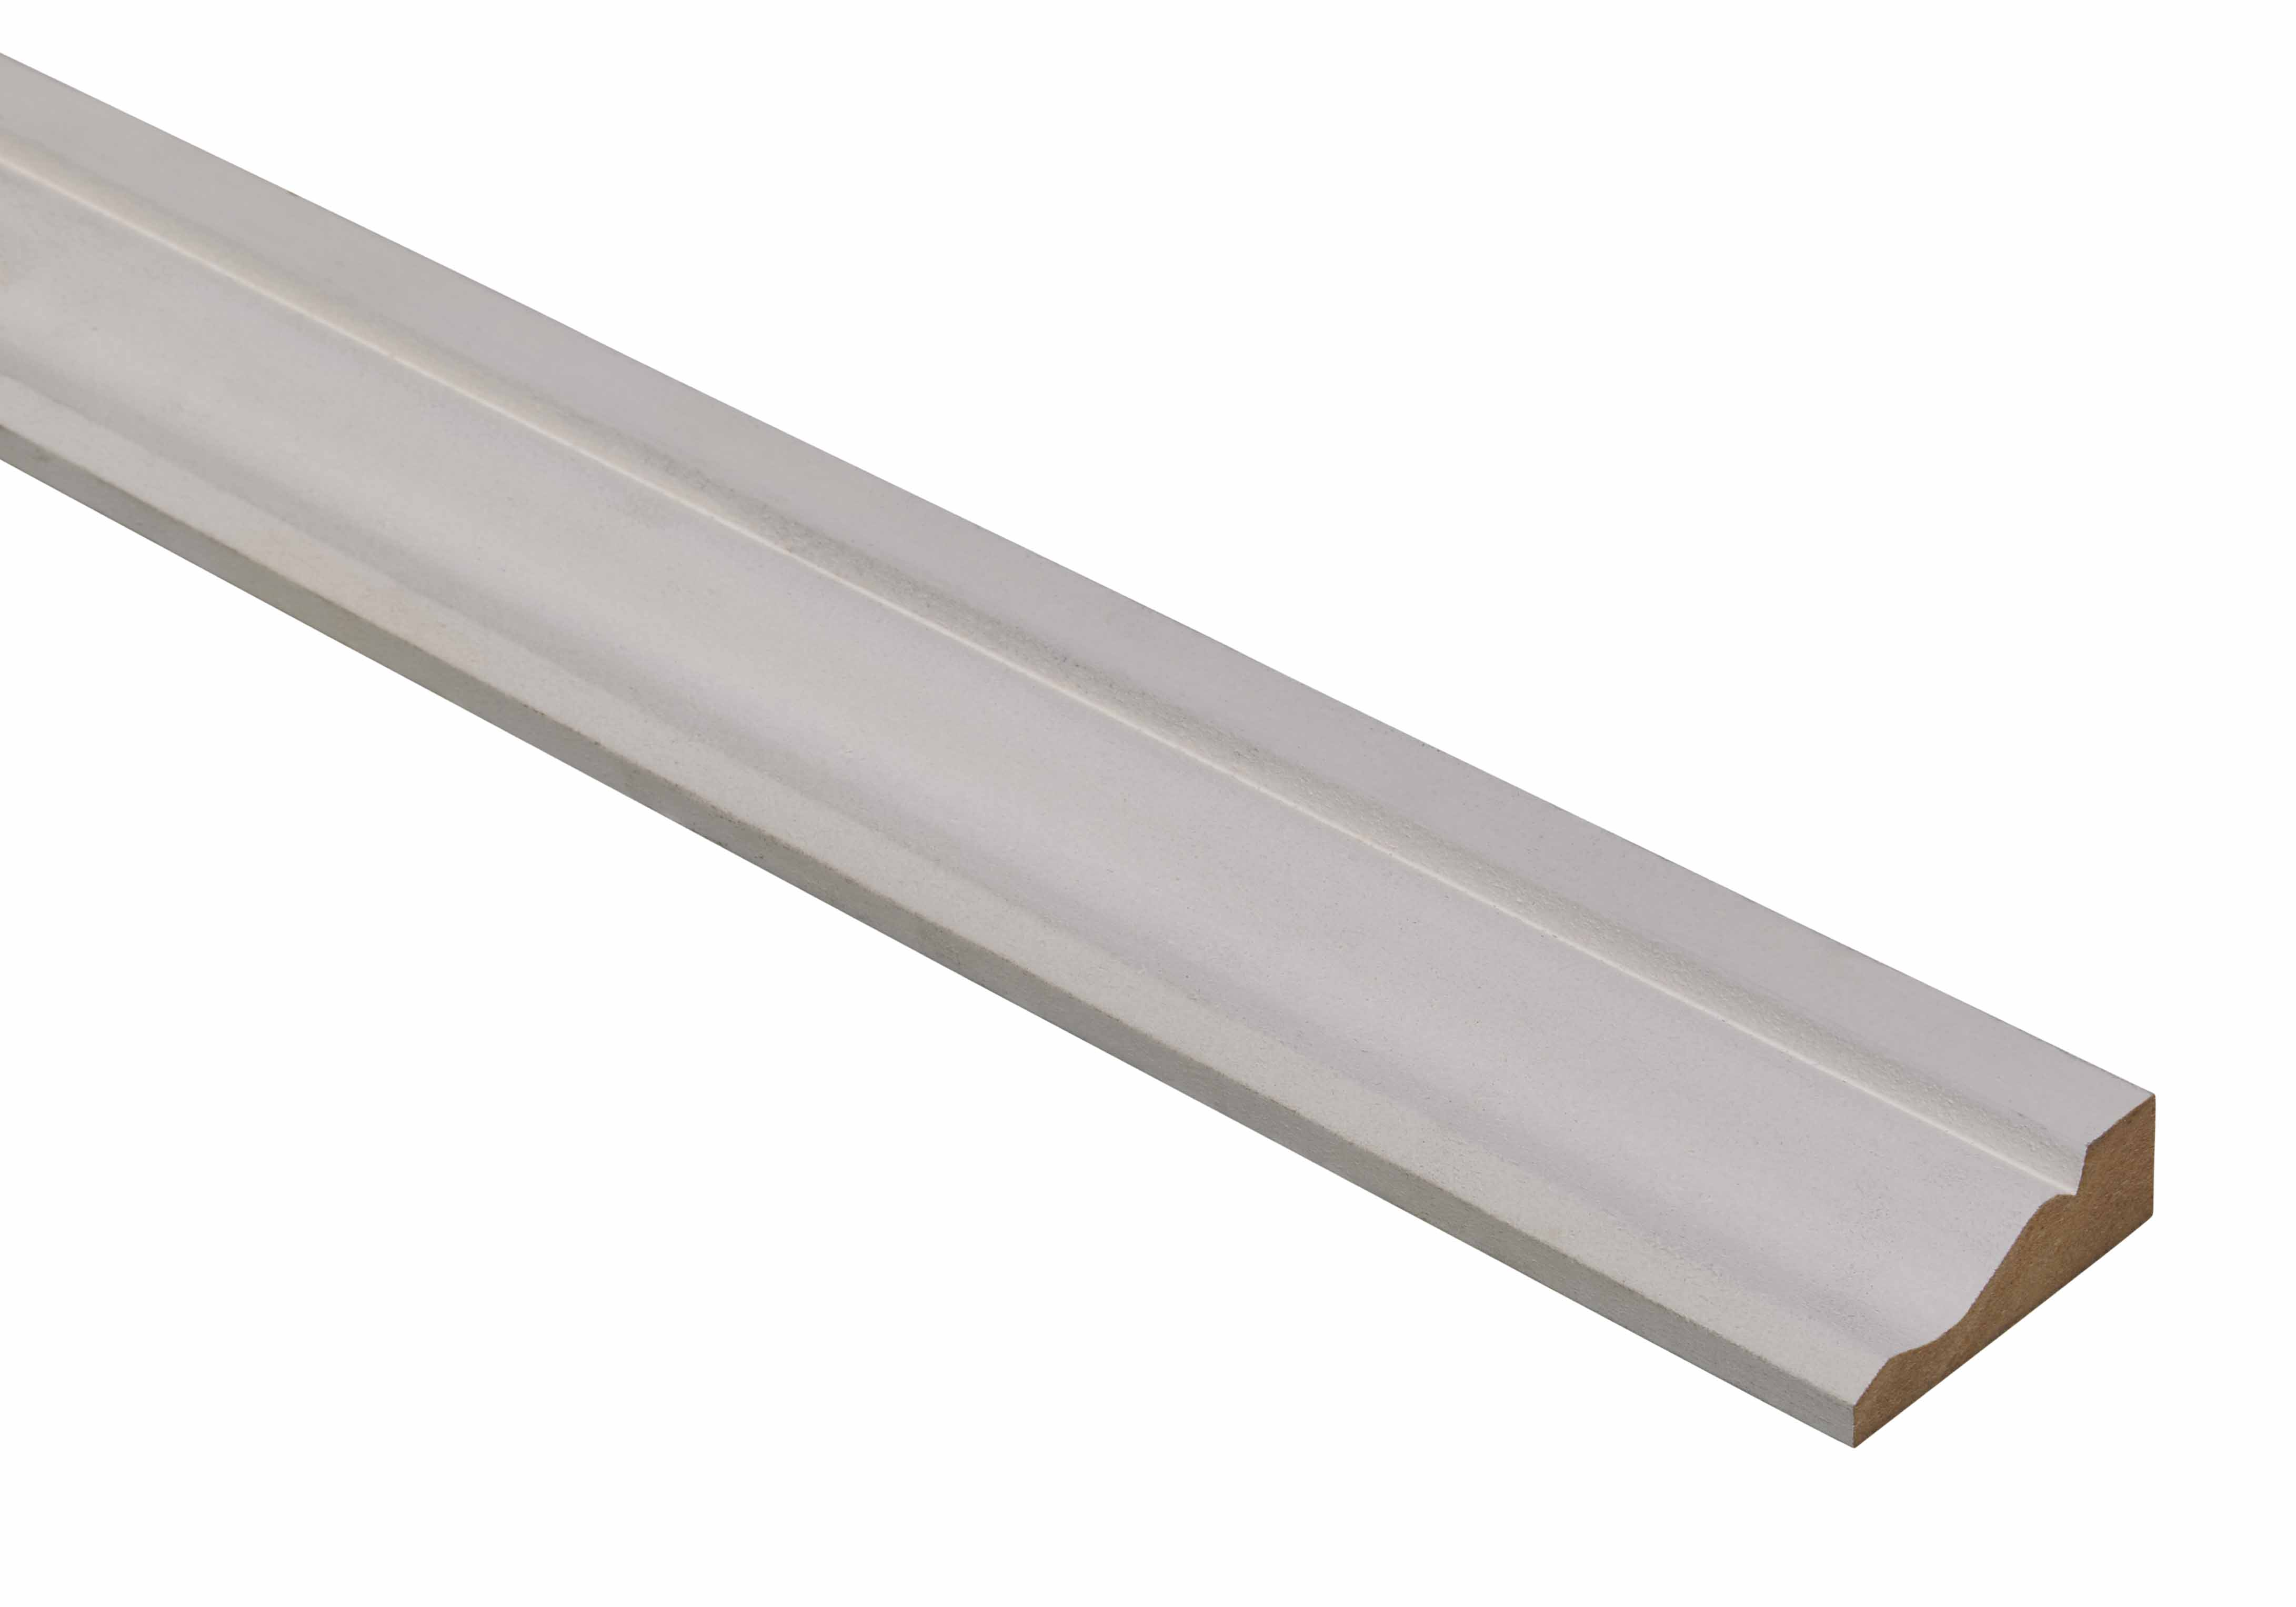 10 MDF Ogee Architrave Mouldings 18 x 57 x 2100mm